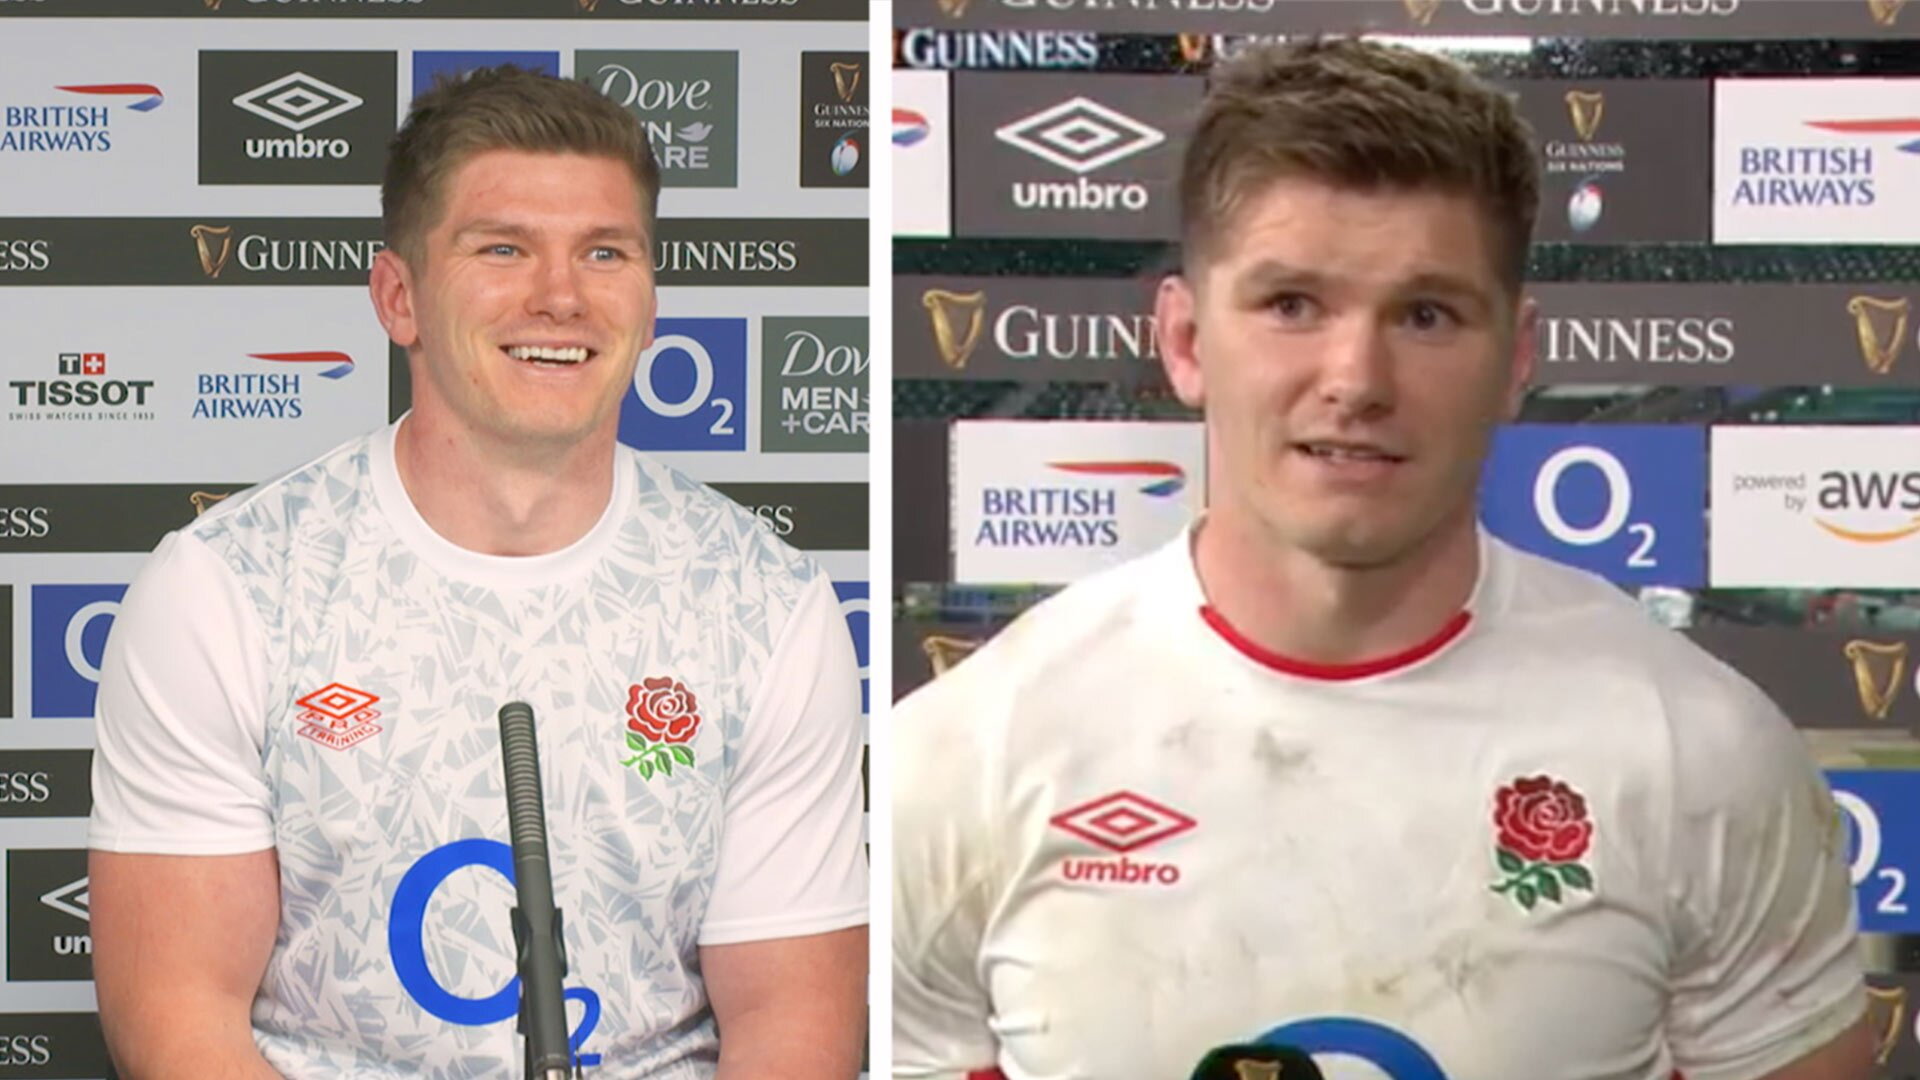 Owen Farrell looks genuinely happy in England's post match press conference